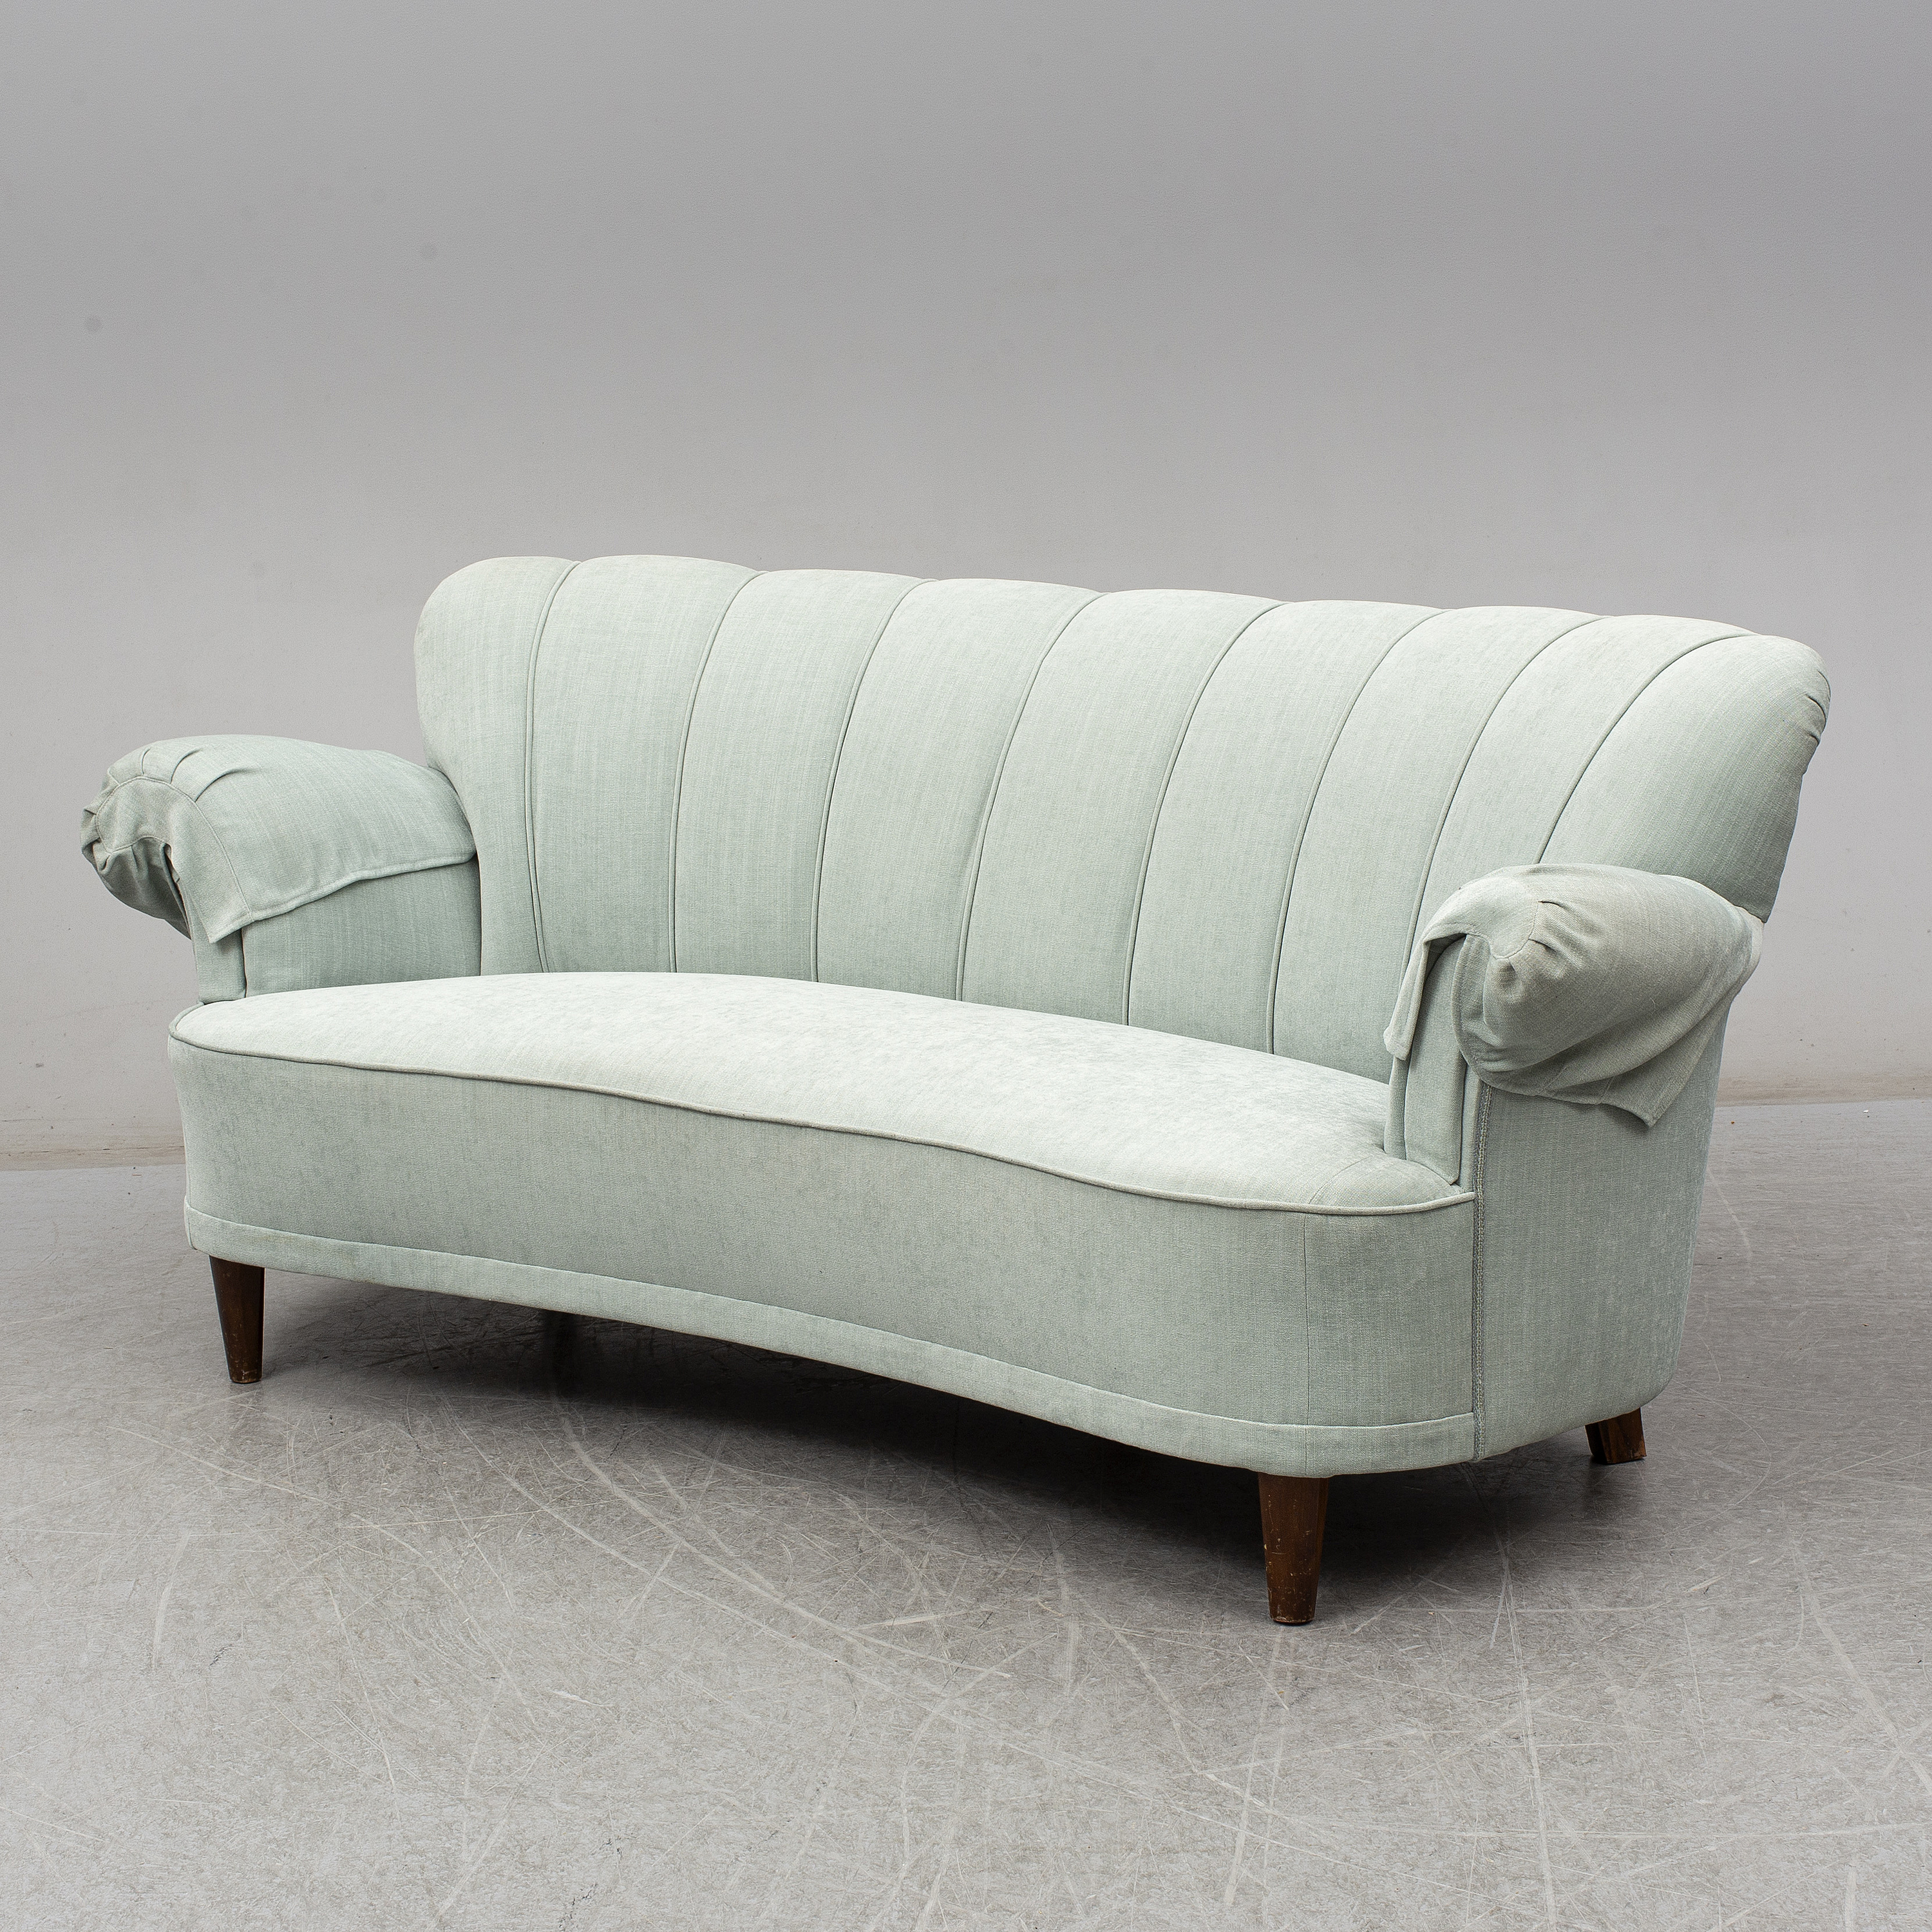 Remarkable Sofa Probably 1930S 40S Bukowskis Dailytribune Chair Design For Home Dailytribuneorg